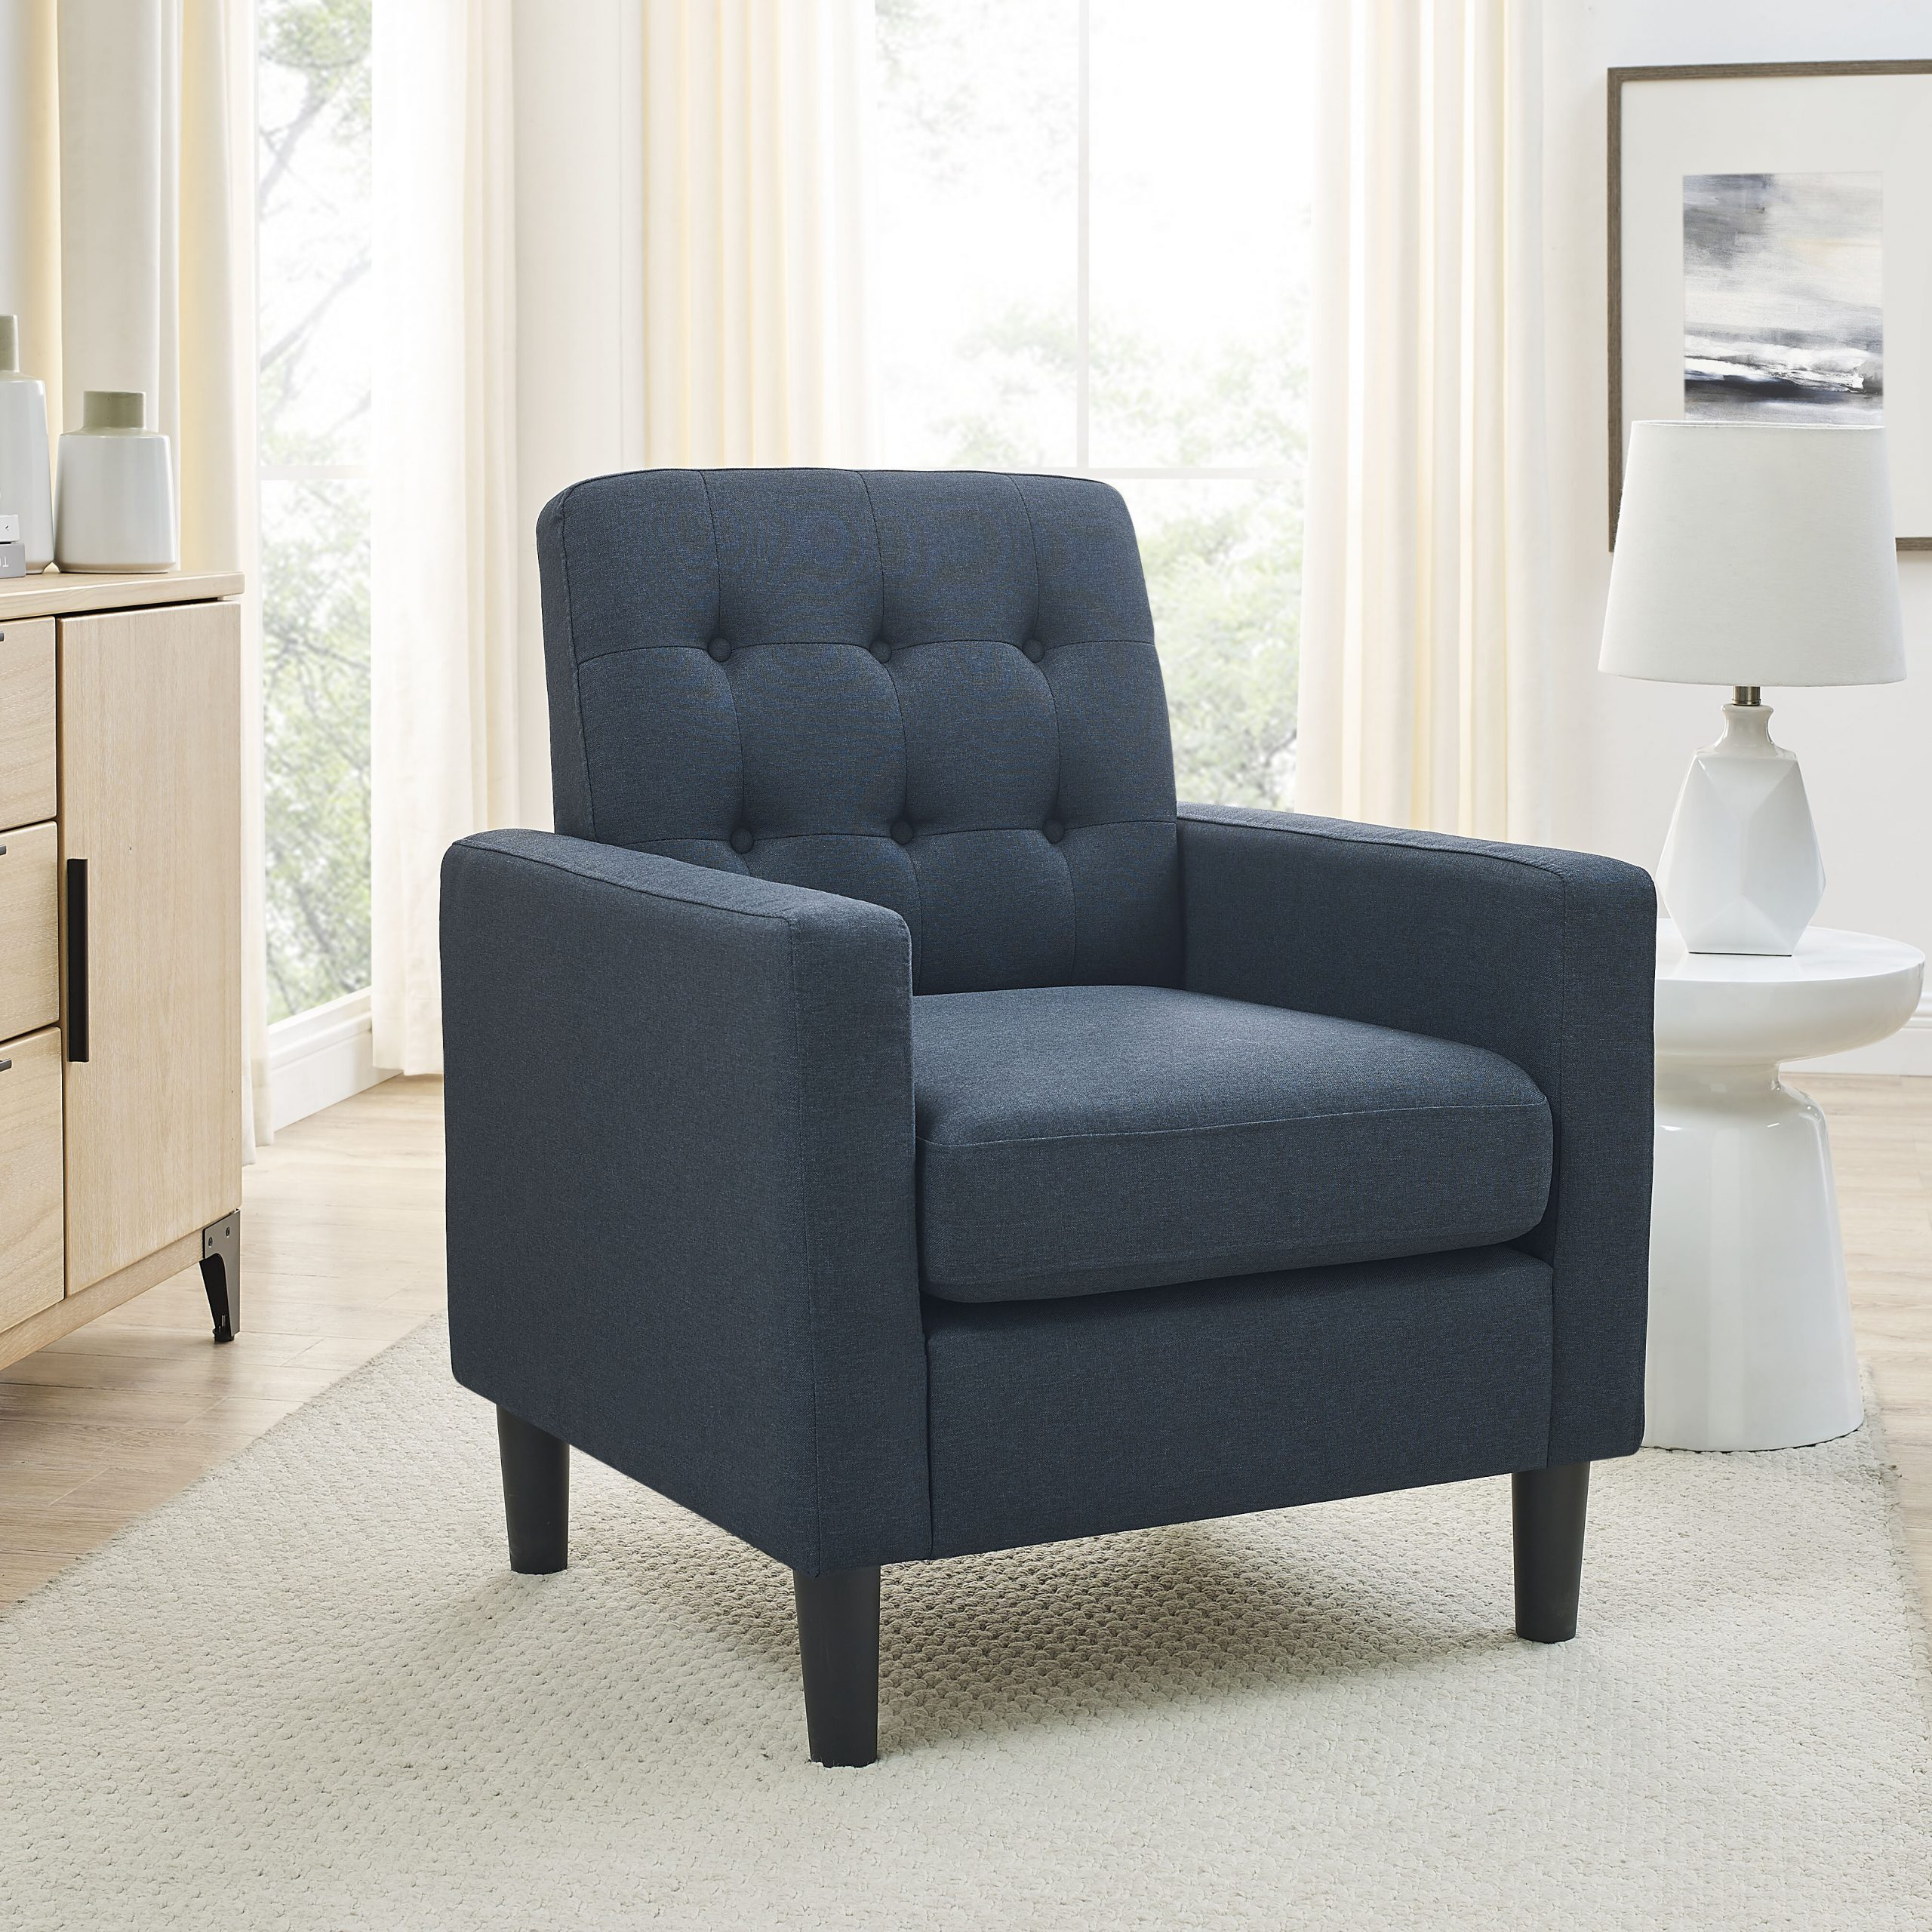 Autenberg Armchair Throughout Hiltz Armchairs (View 4 of 15)